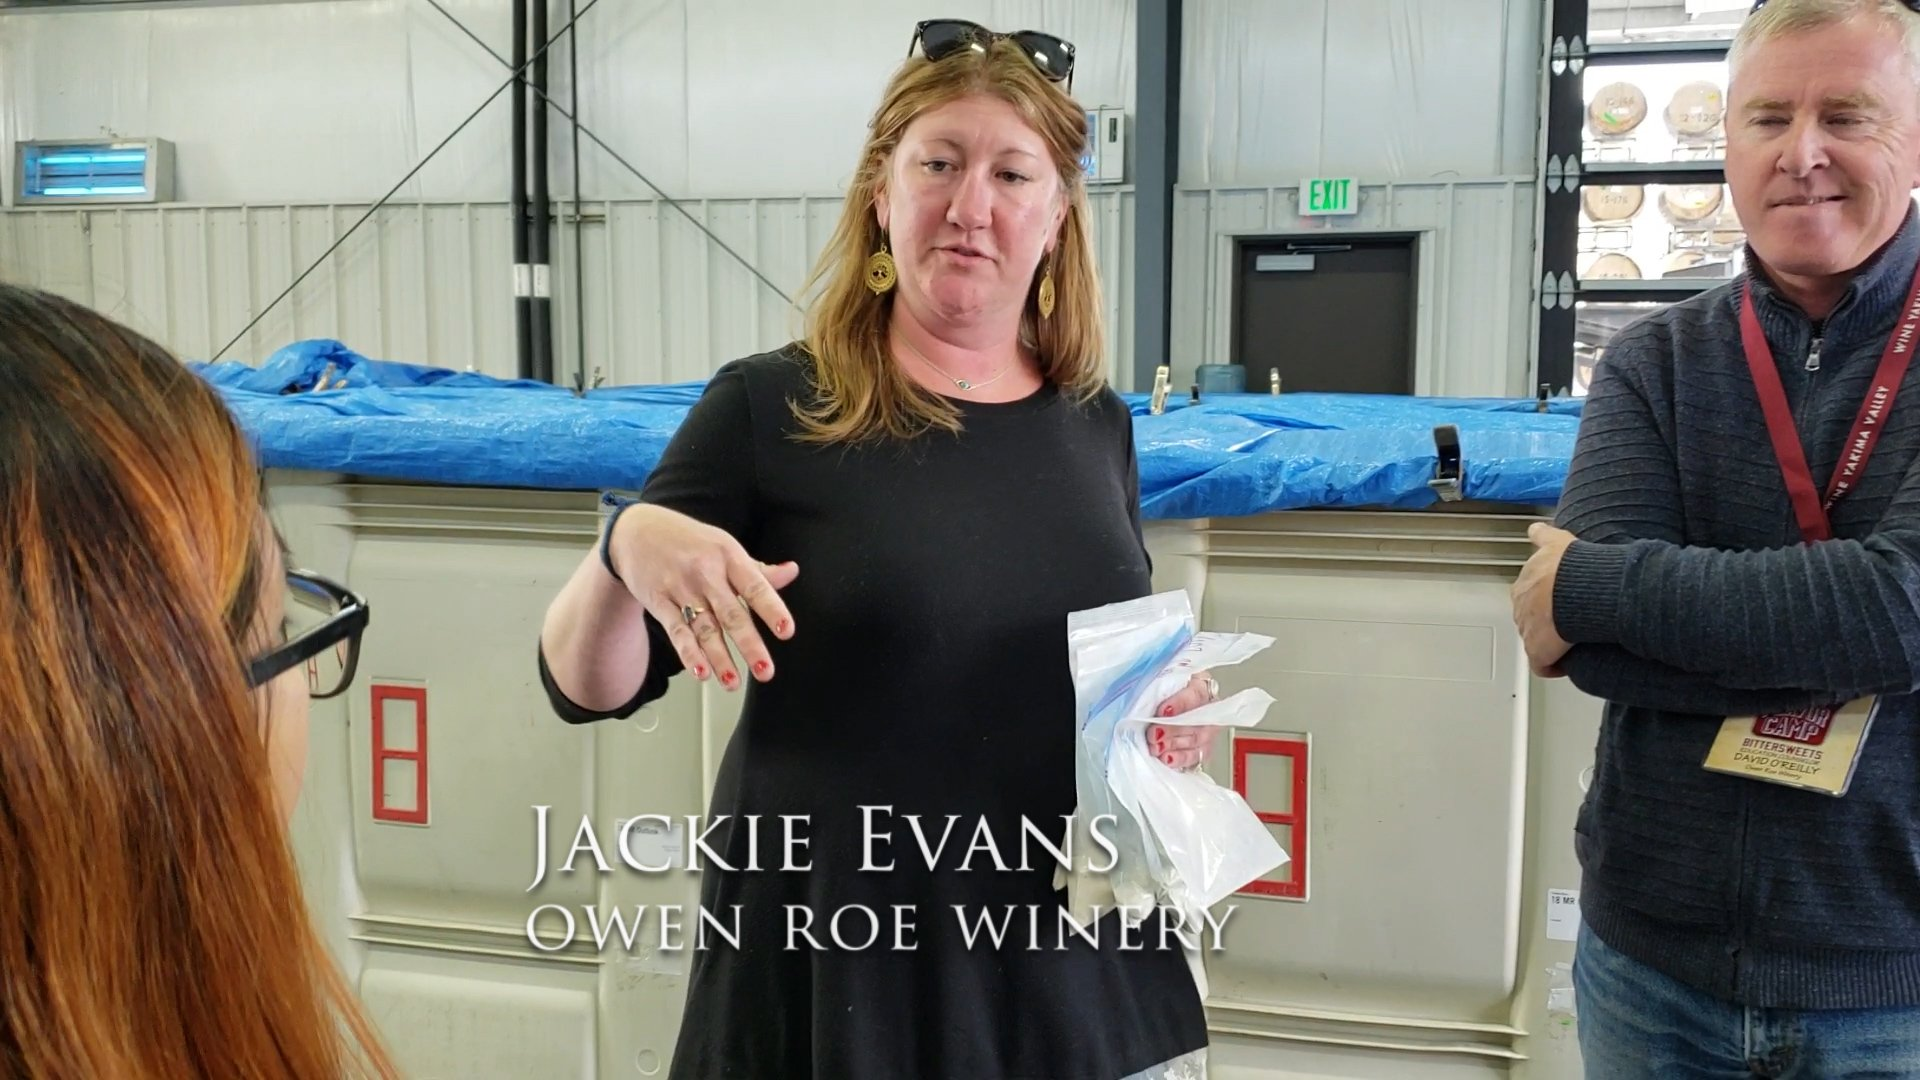 Jackie Evans, Owen Roe Winery, Winemaker